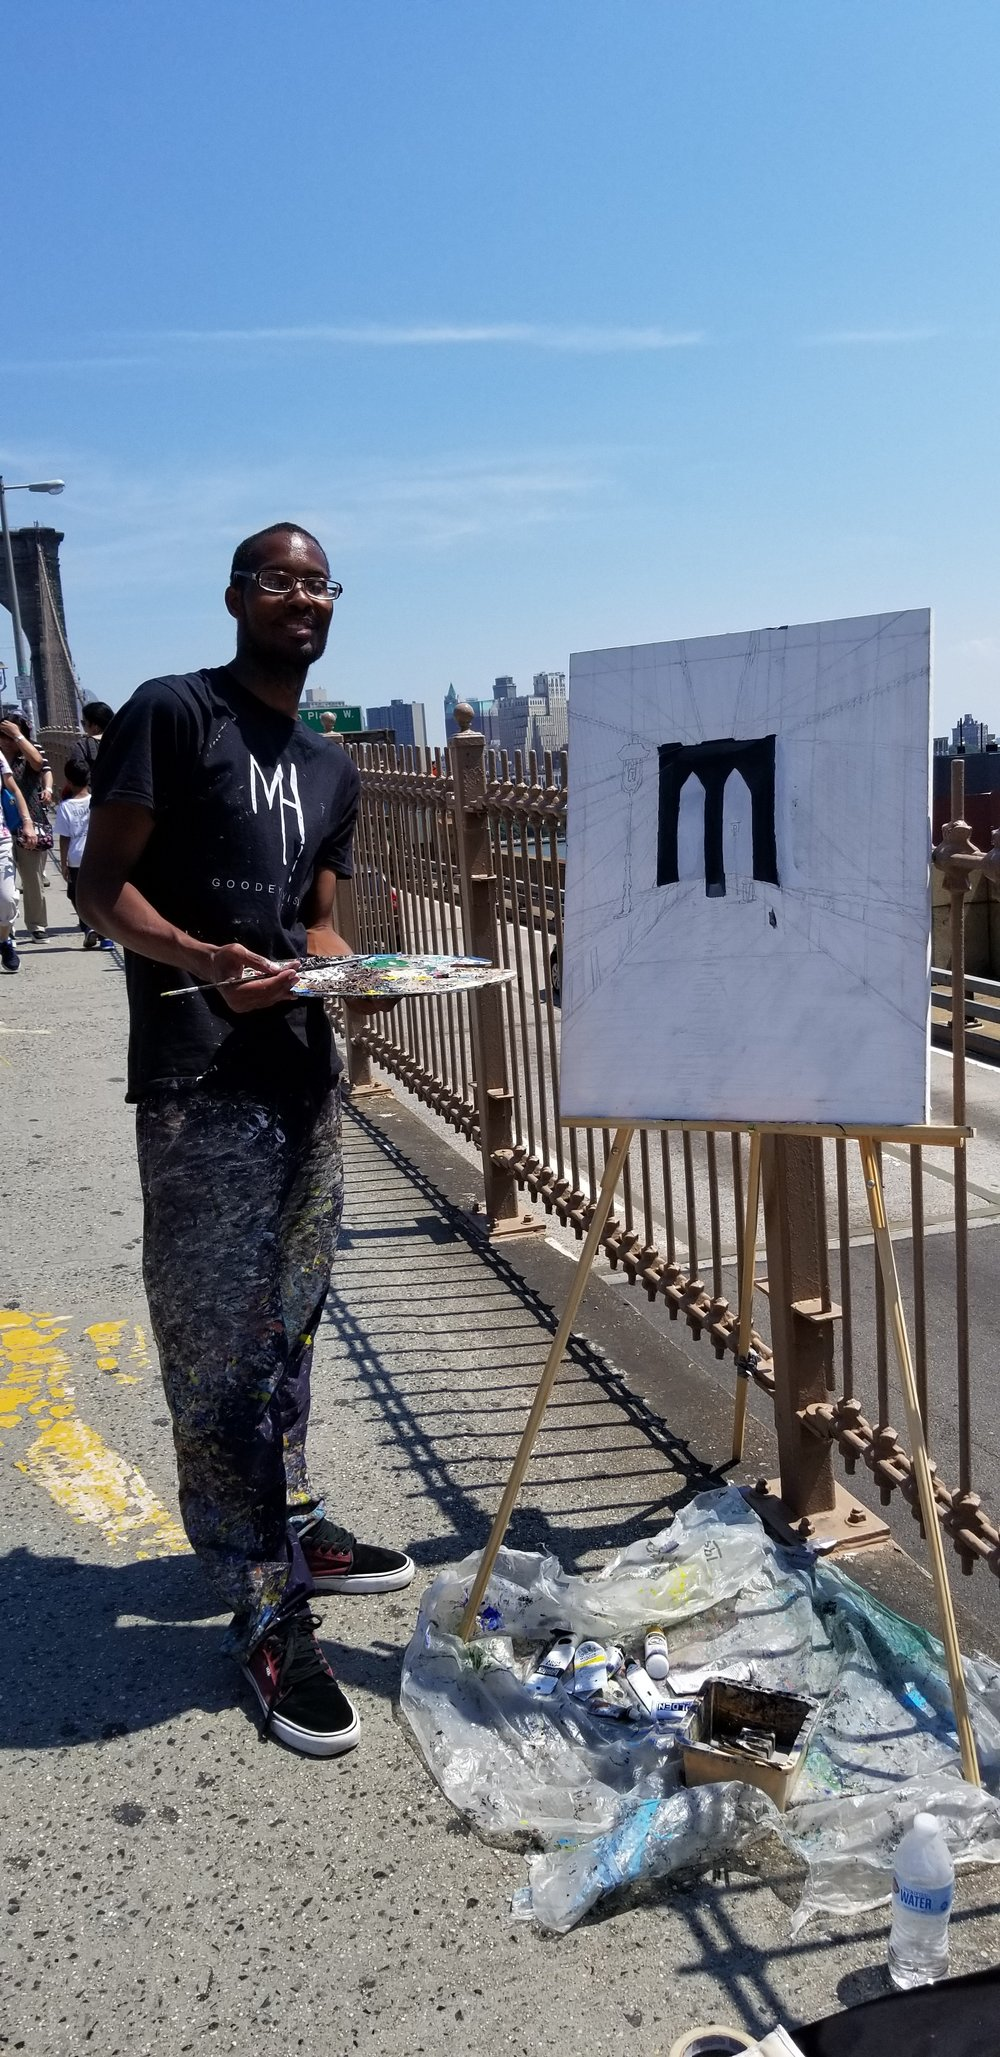 Me painting The Brooklyn Bridge Walkway on the bridge with my display artwork,